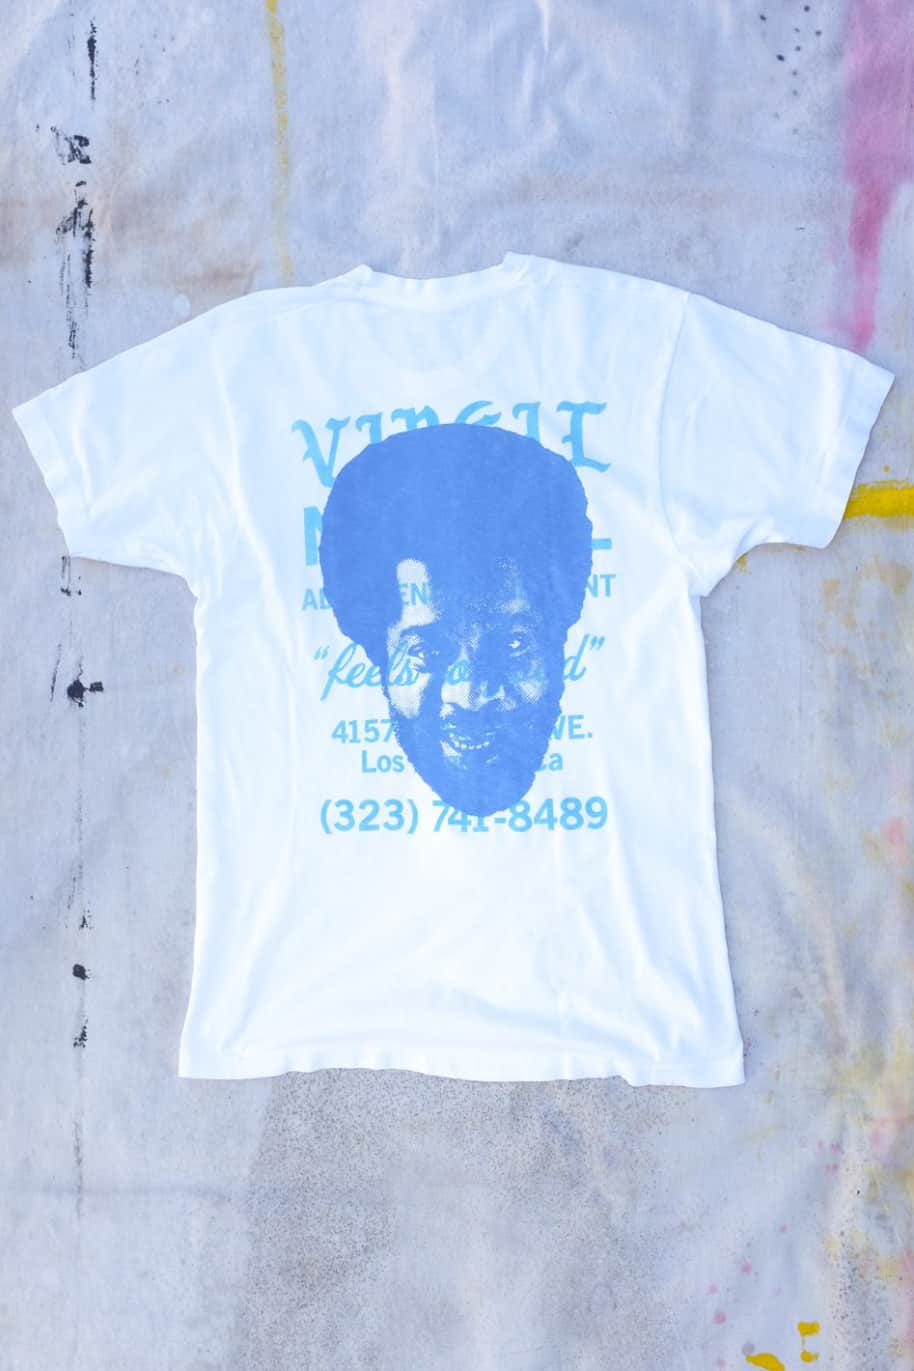 Donald Byrd Short Sleeve Vintage Tee Shirt | T-Shirt by Virgil Normal 1